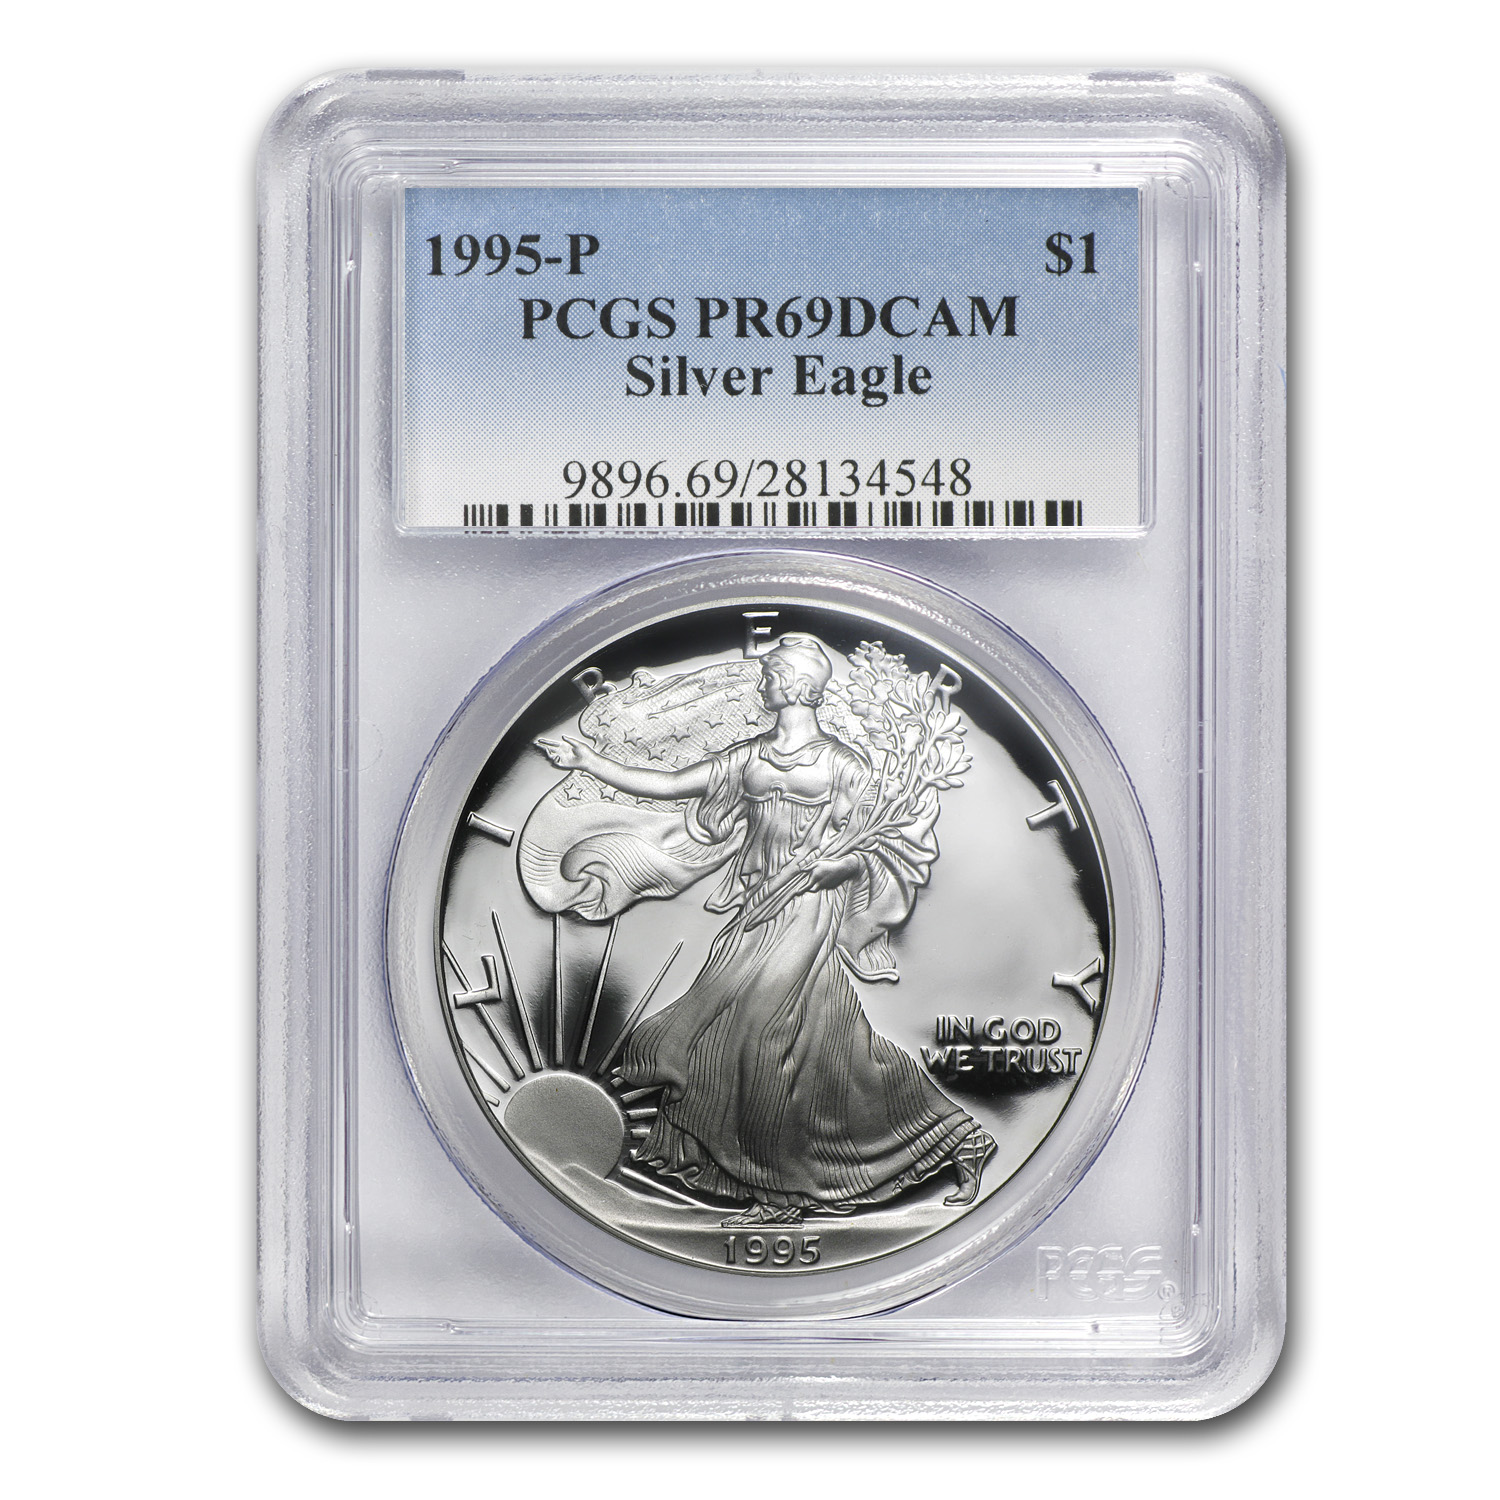 1986-2015 29-Coin Proof Silver American Eagle Set PR-69 PCGS